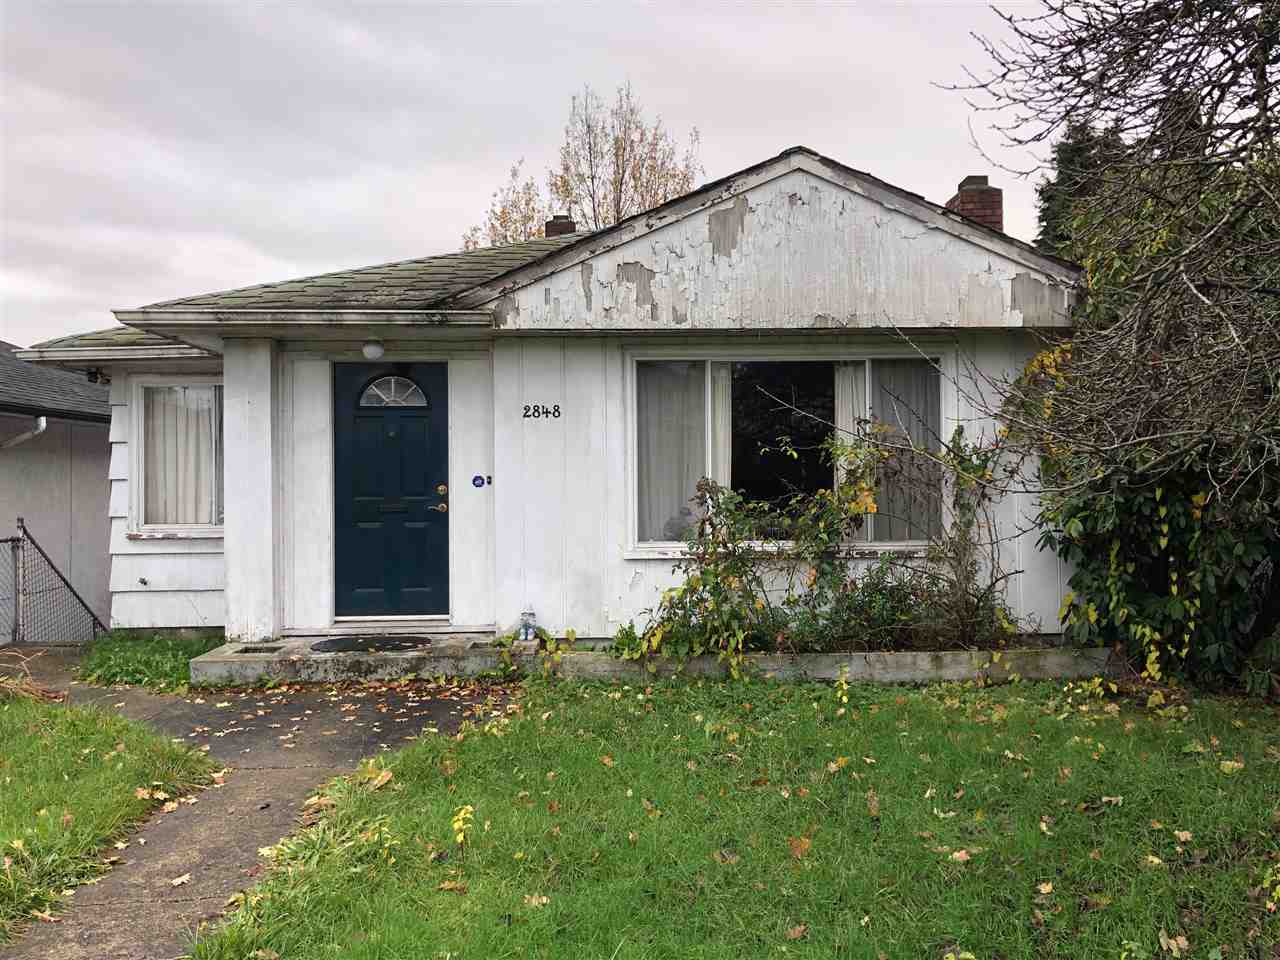 2848 E BROADWAY AVENUE - Renfrew Heights House/Single Family for sale, 4 Bedrooms (R2534241) - #1